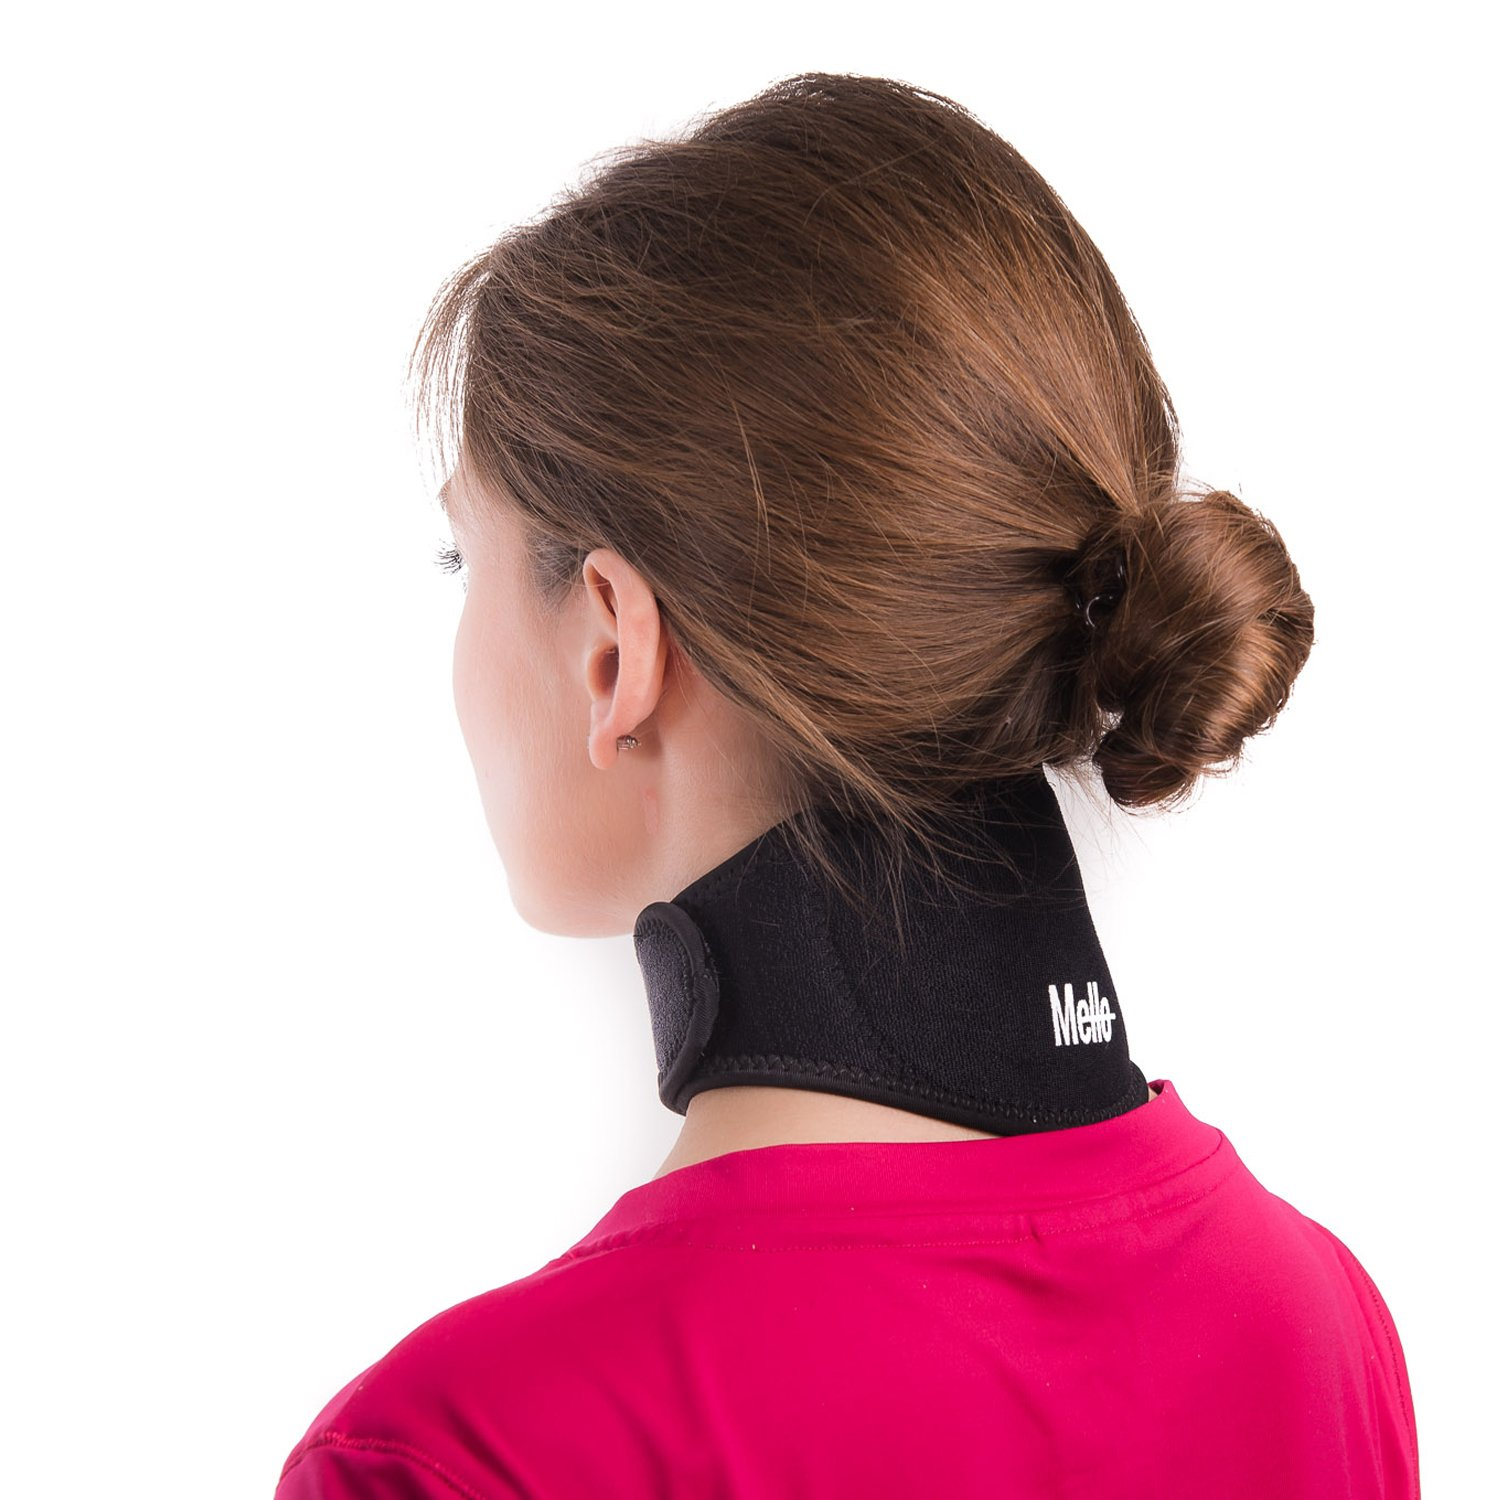 Neck Pain Relief Wrap by Mello - Chronic Neck Stiffness Brace-Soft Cervical Support Collar-Health Magnet Physical Therapy for Migraines Headache -Comfortable Air, Car Travel